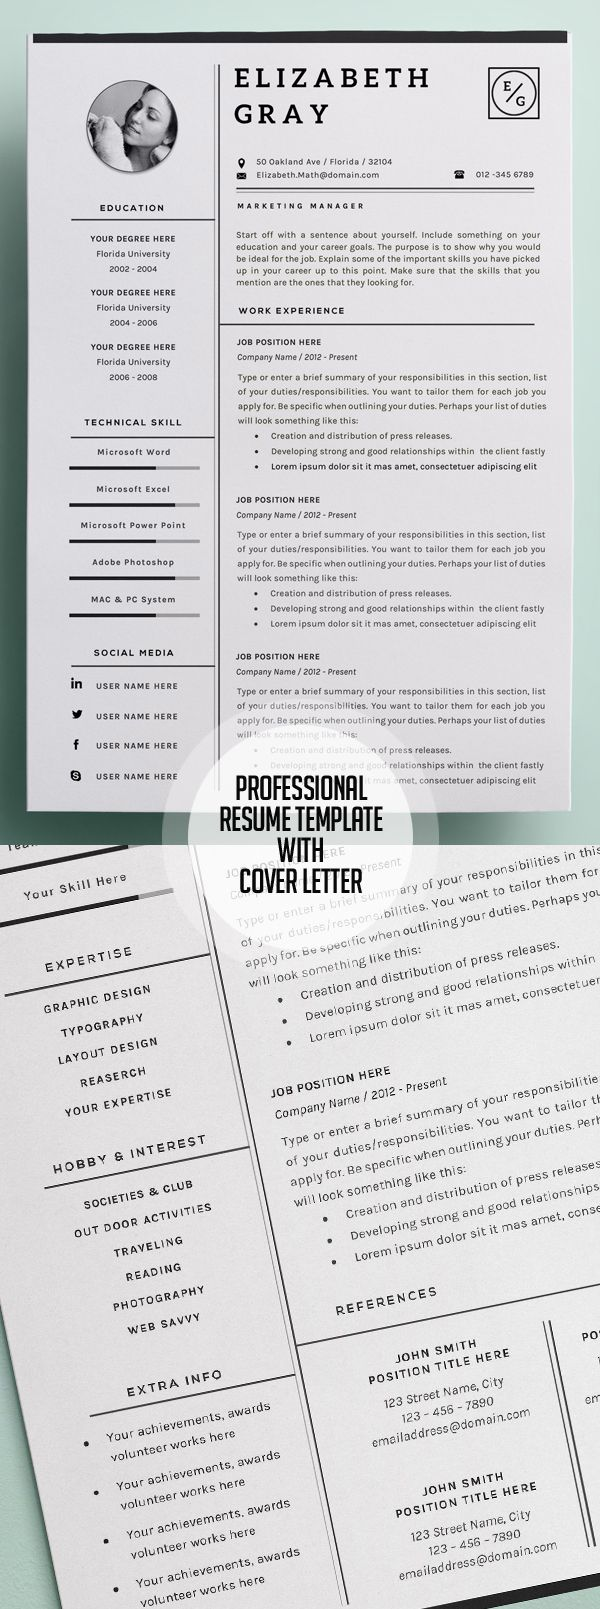 Picnictoimpeachus  Mesmerizing  Resume Ideas On Pinterest  Resume Resume Templates And  With Gorgeous Professional And Modern Resume Template With Page Cover Cvtemplate With Enchanting Creating A Resume Online Also Medical Coding Resume In Addition Pharmacy Technician Resume Objective And Pharmacist Resume Sample As Well As Aircraft Mechanic Resume Additionally Best Resume Template Word From Pinterestcom With Picnictoimpeachus  Gorgeous  Resume Ideas On Pinterest  Resume Resume Templates And  With Enchanting Professional And Modern Resume Template With Page Cover Cvtemplate And Mesmerizing Creating A Resume Online Also Medical Coding Resume In Addition Pharmacy Technician Resume Objective From Pinterestcom